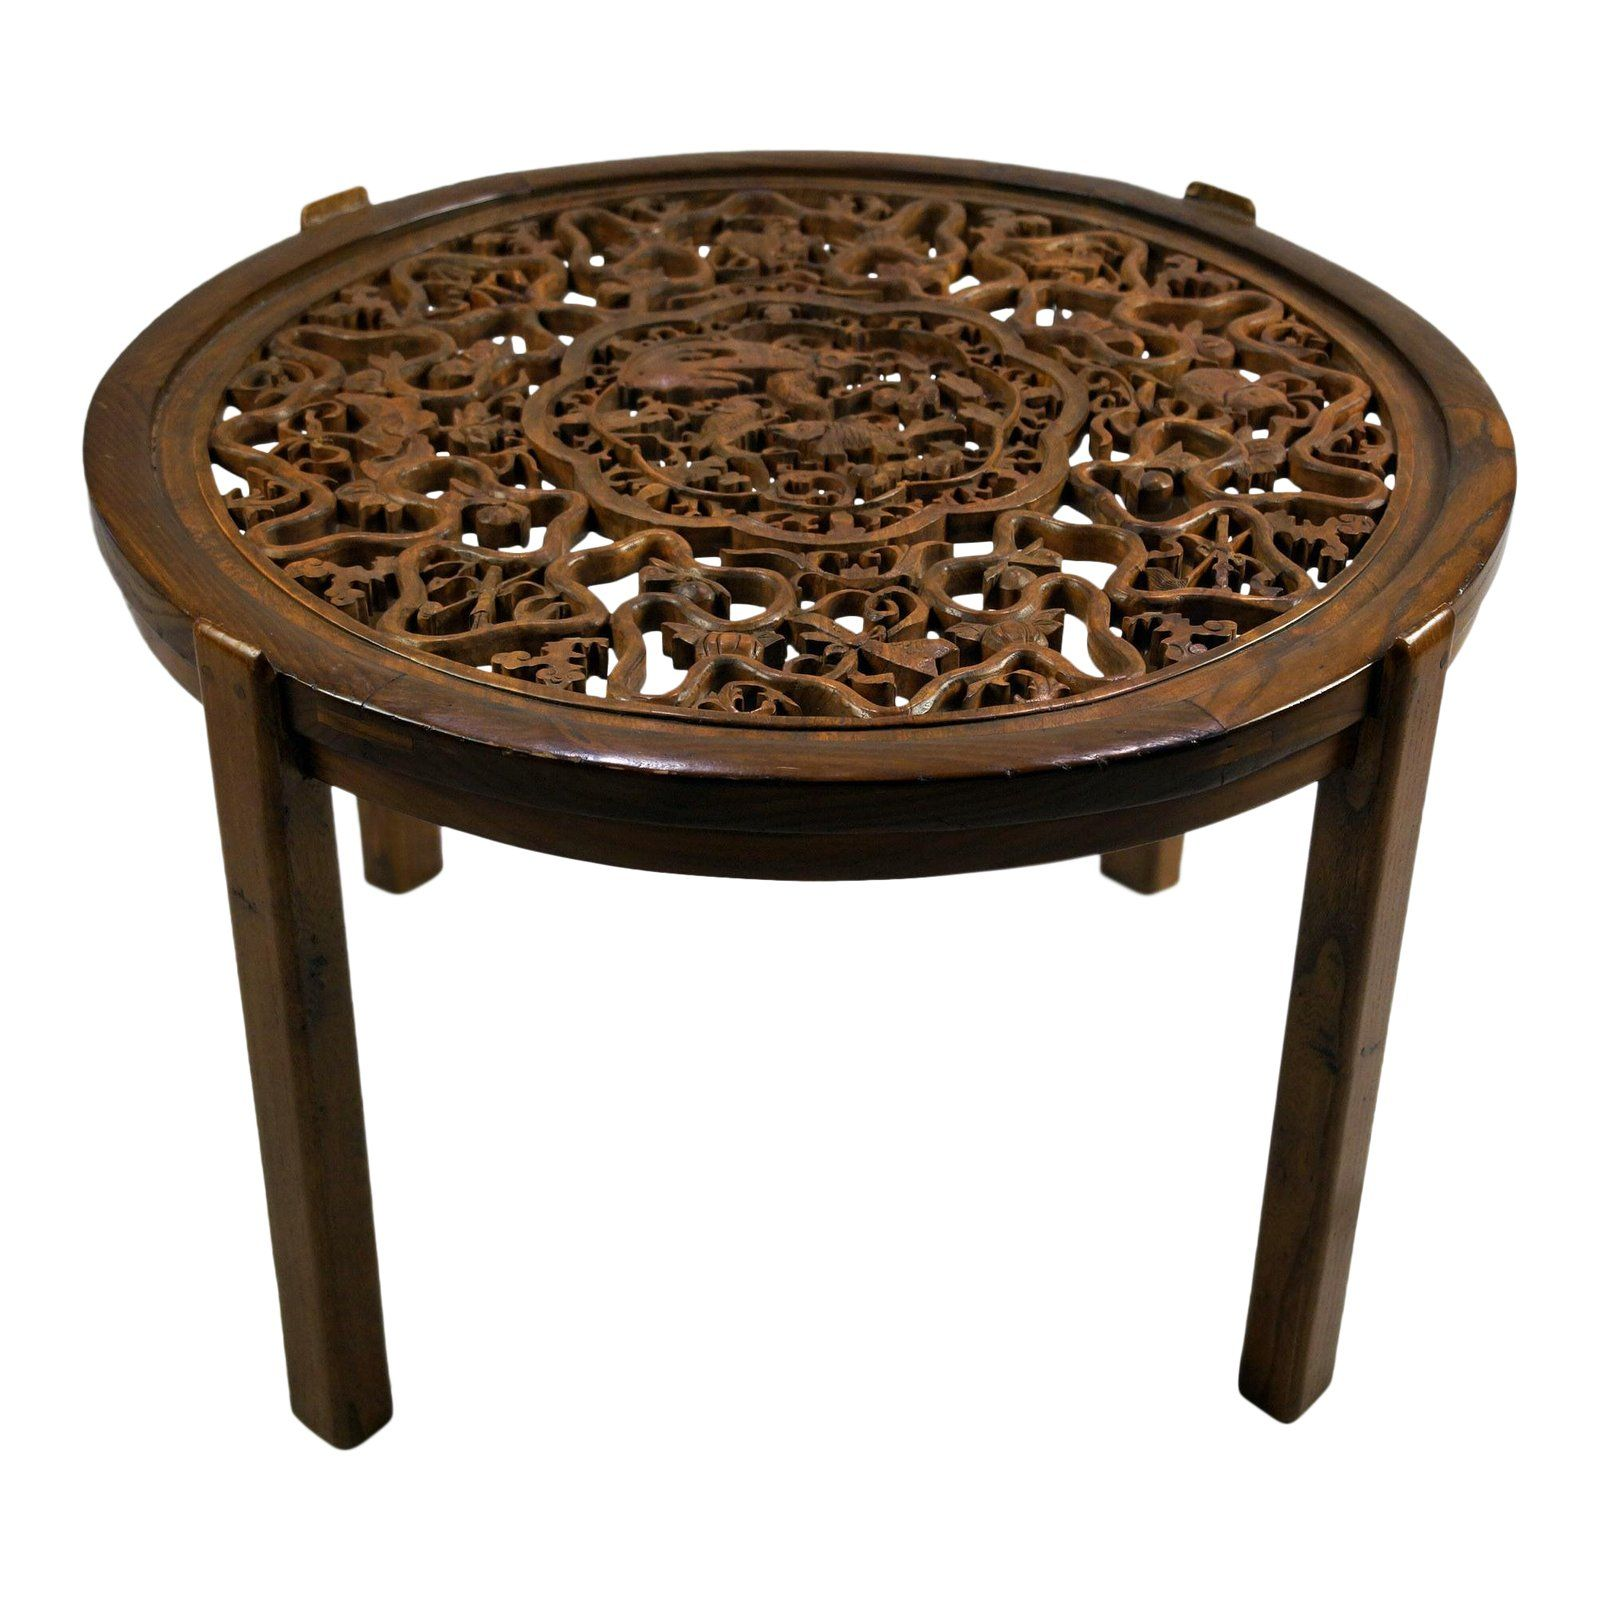 20th Century Asian Elm Round Coffee Table With Carved Panel Round Coffee Table Tea Table Coffee Table With Stools [ 1600 x 1600 Pixel ]